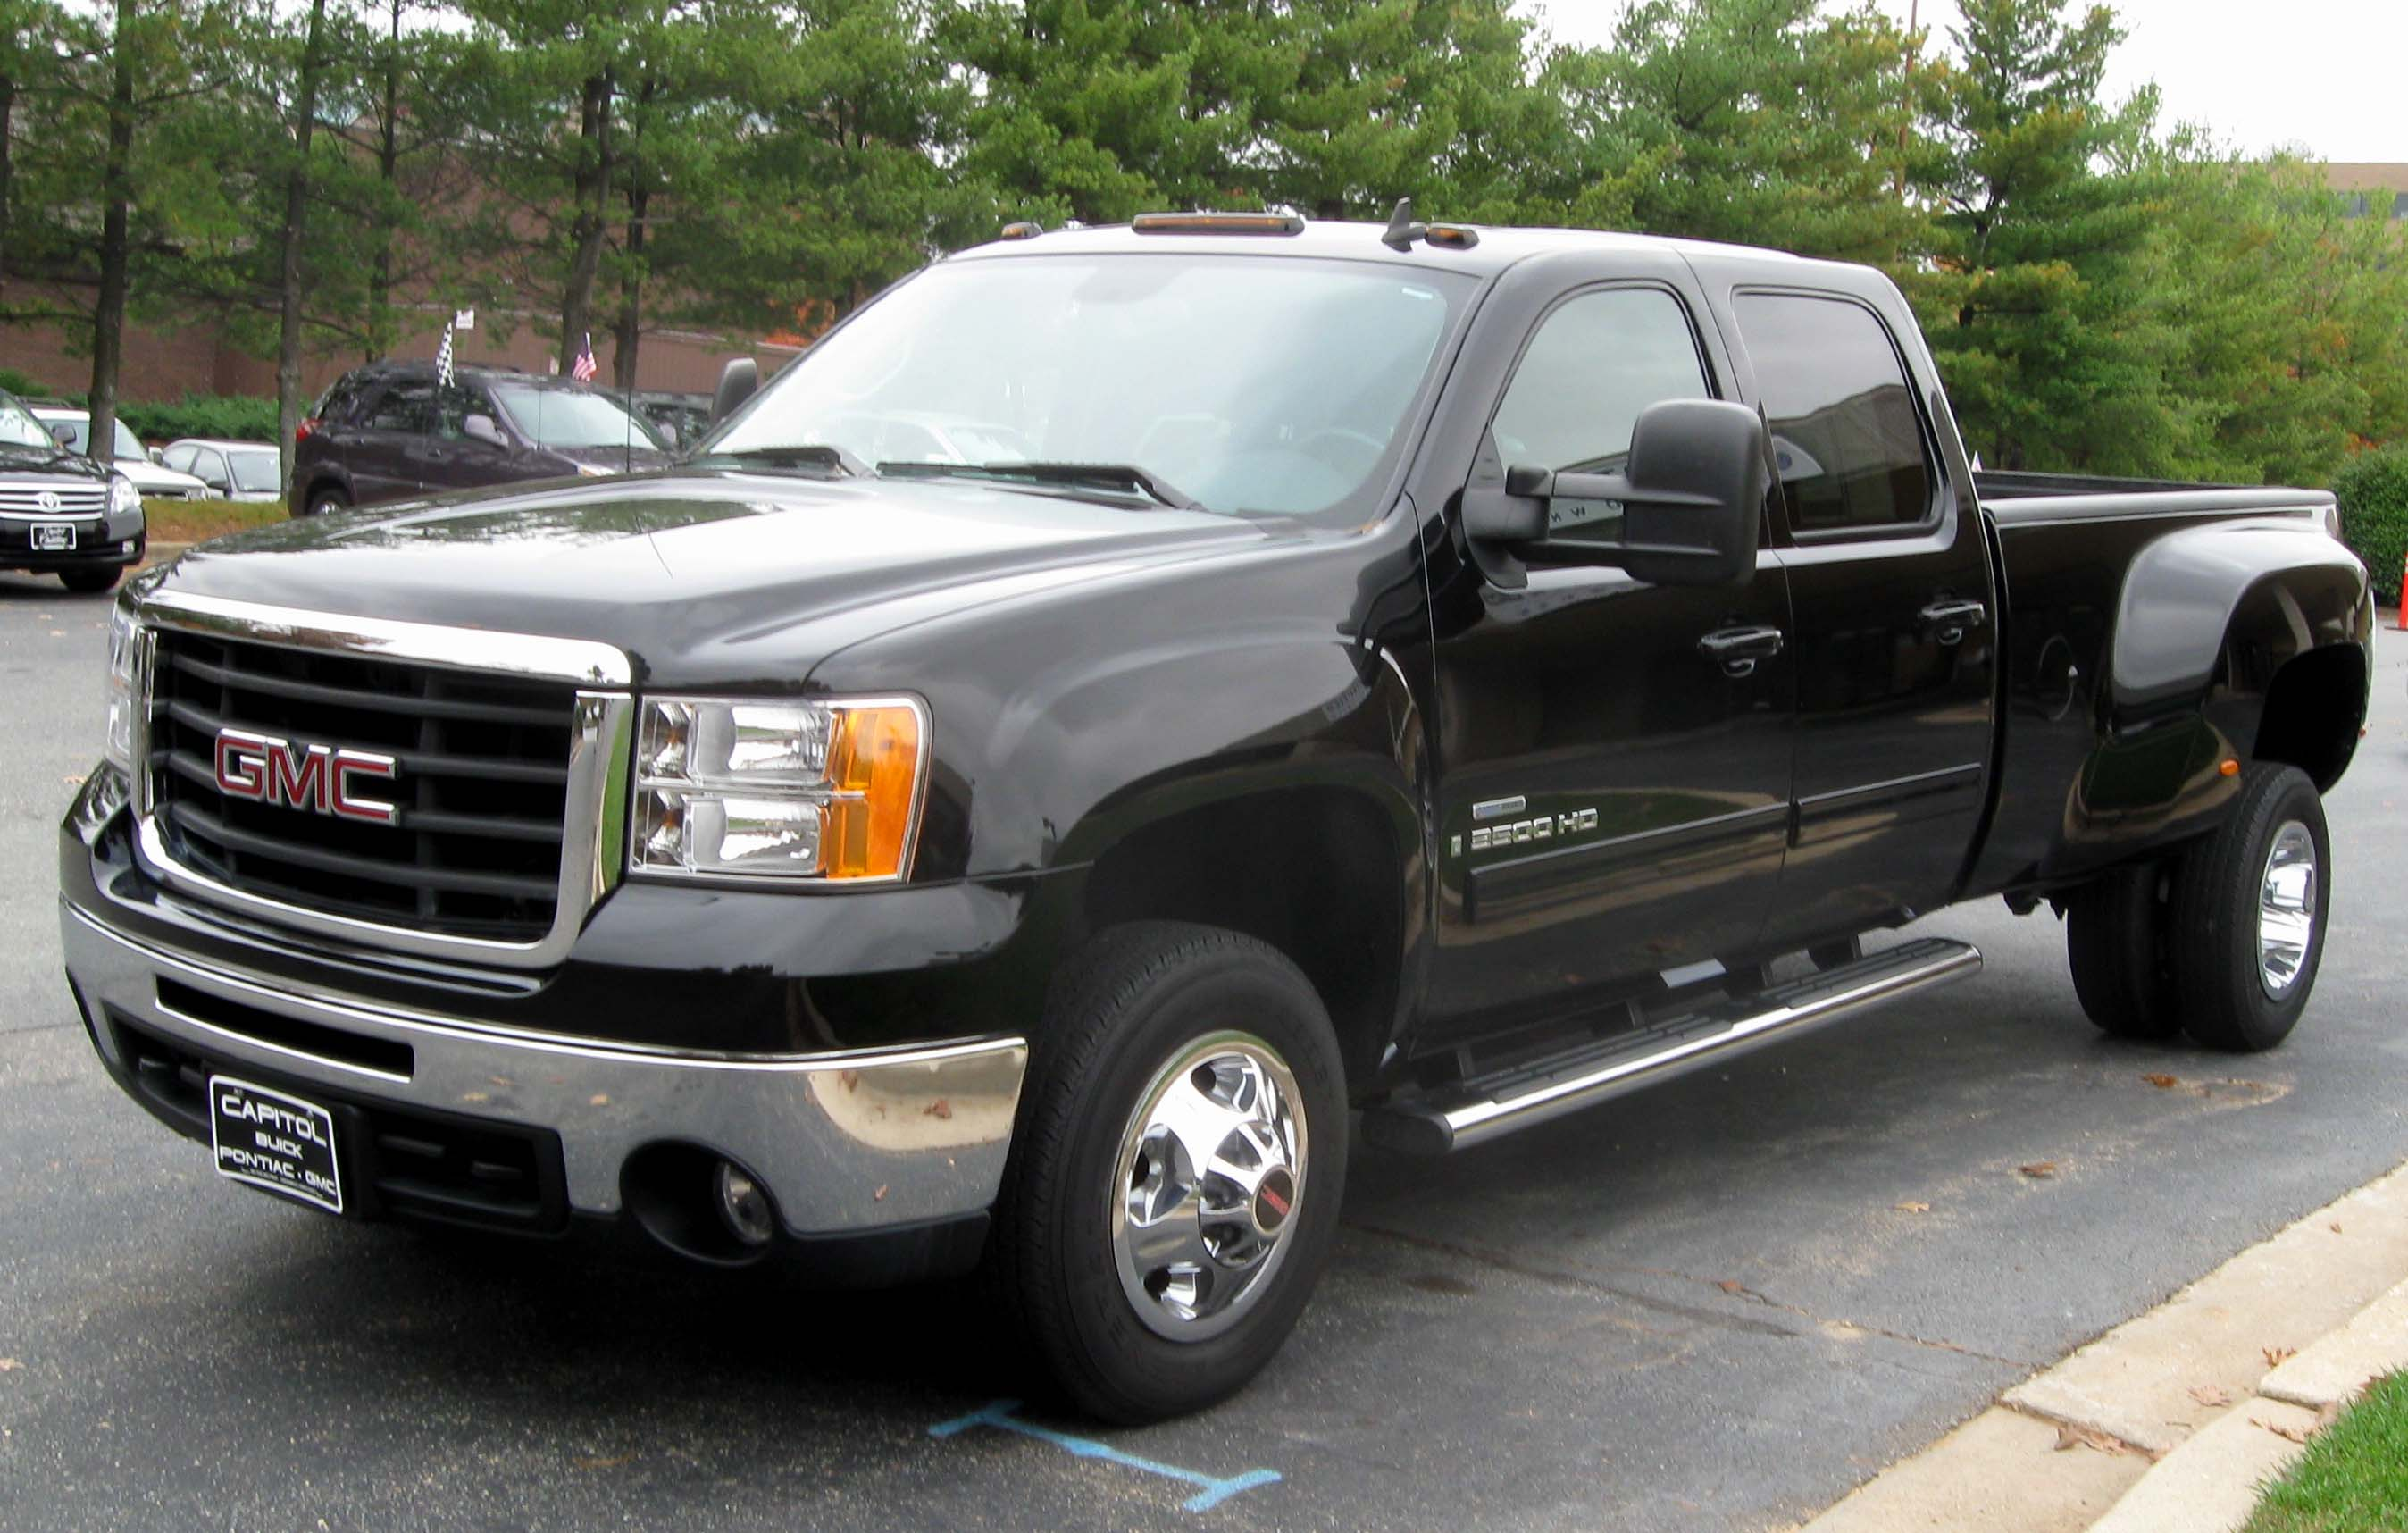 Image Result For Gmc Sierra Chevy